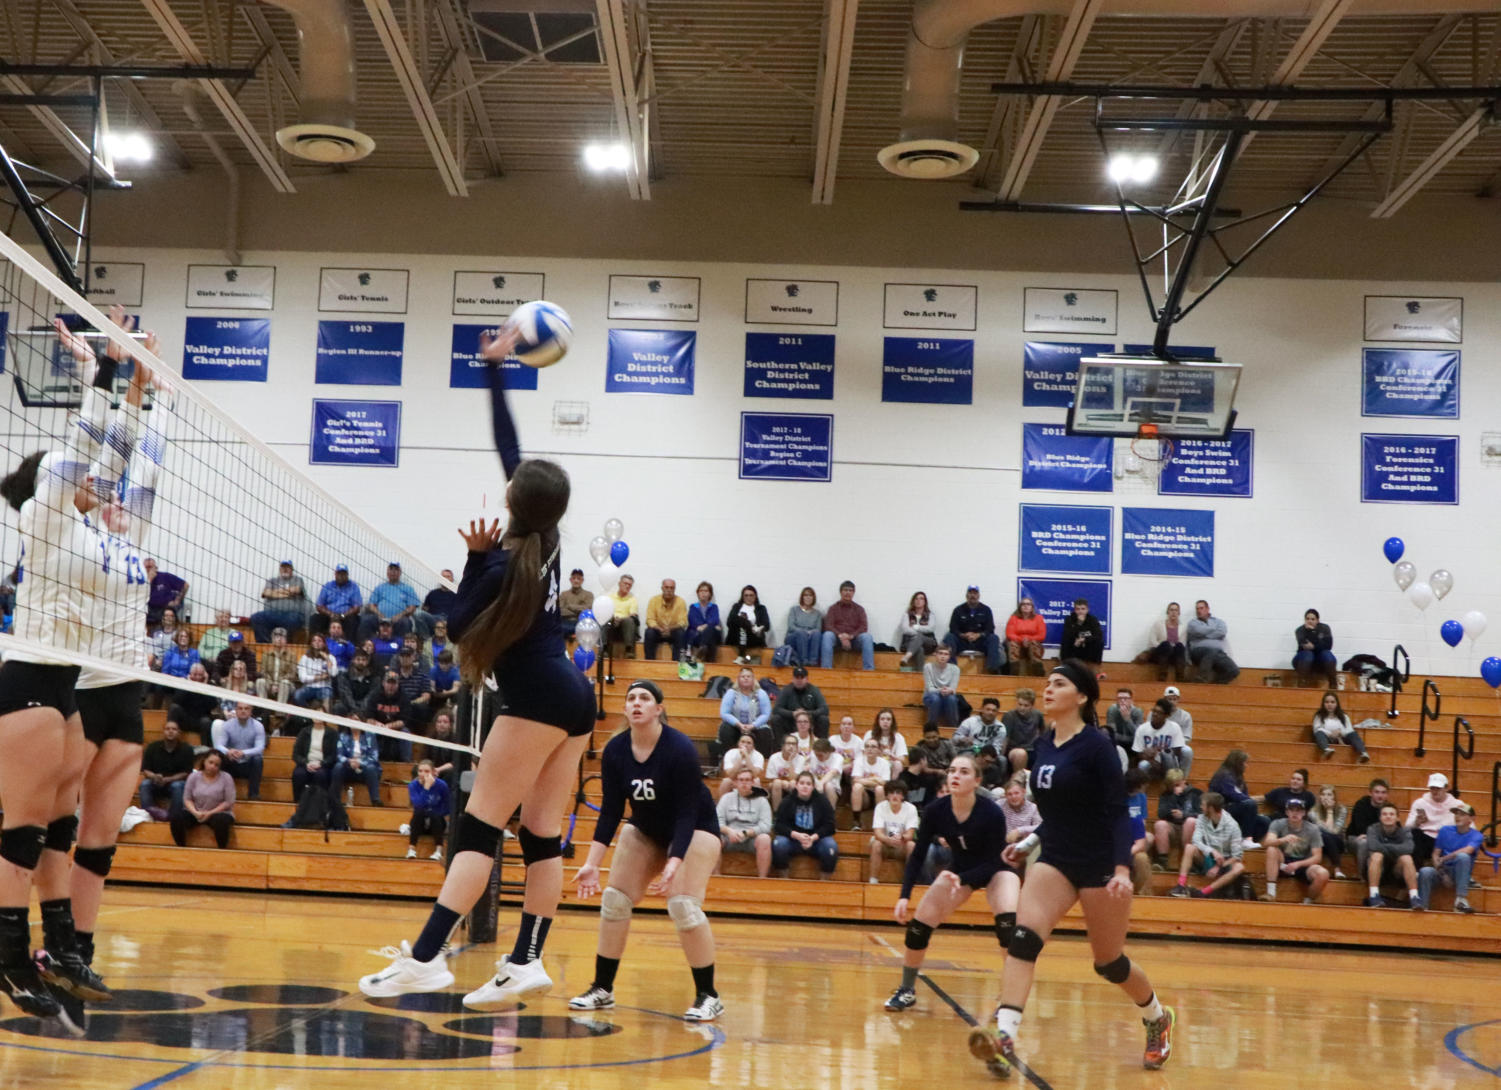 Junior+Abby+McCollum+goes+up+to+hit+in+the+first+set+against+the+Rockbridge+Wildcats.+